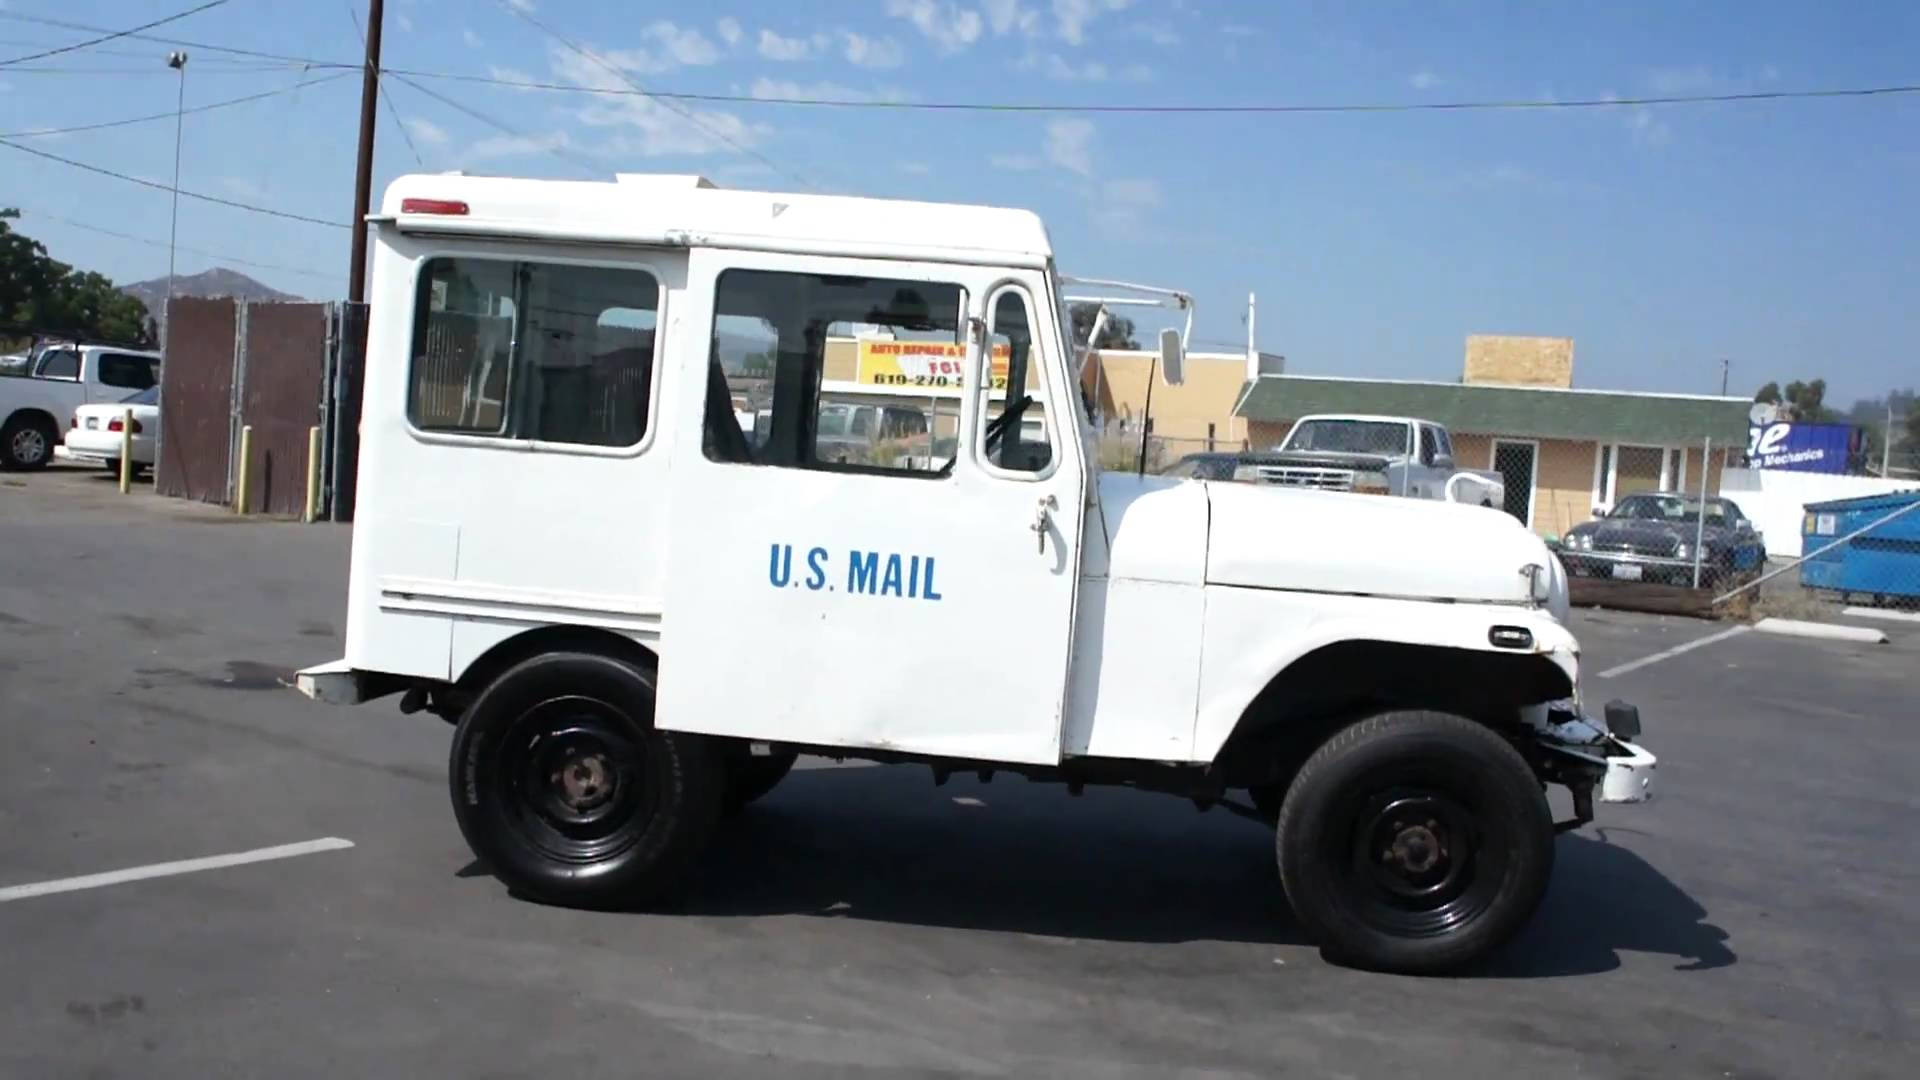 Vehicles for Sell Inspirational 77 Us Mail Postal Jeep Amc Rhd Nice Rmd Truck for Sale Youtube